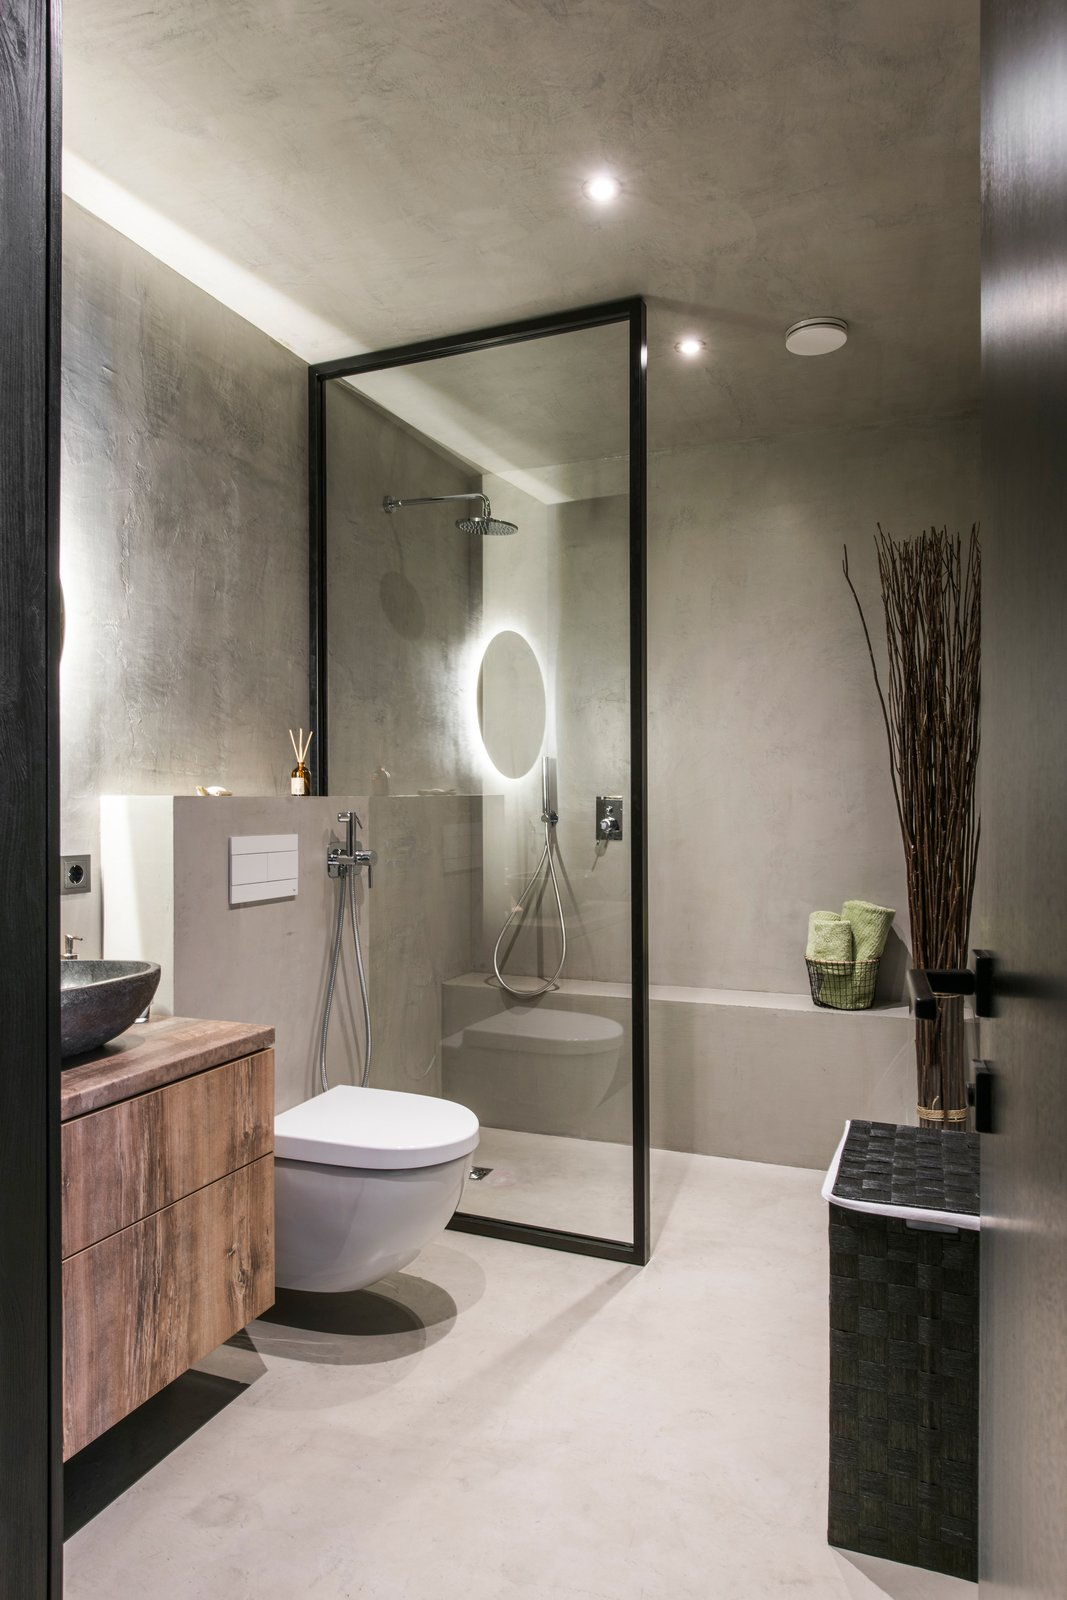 Bath, Concrete, Vessel, Laminate, Open, Accent, Ceiling, Concrete, and One Piece  Best Bath Laminate Ceiling Vessel Photos from Drills&Hollywood